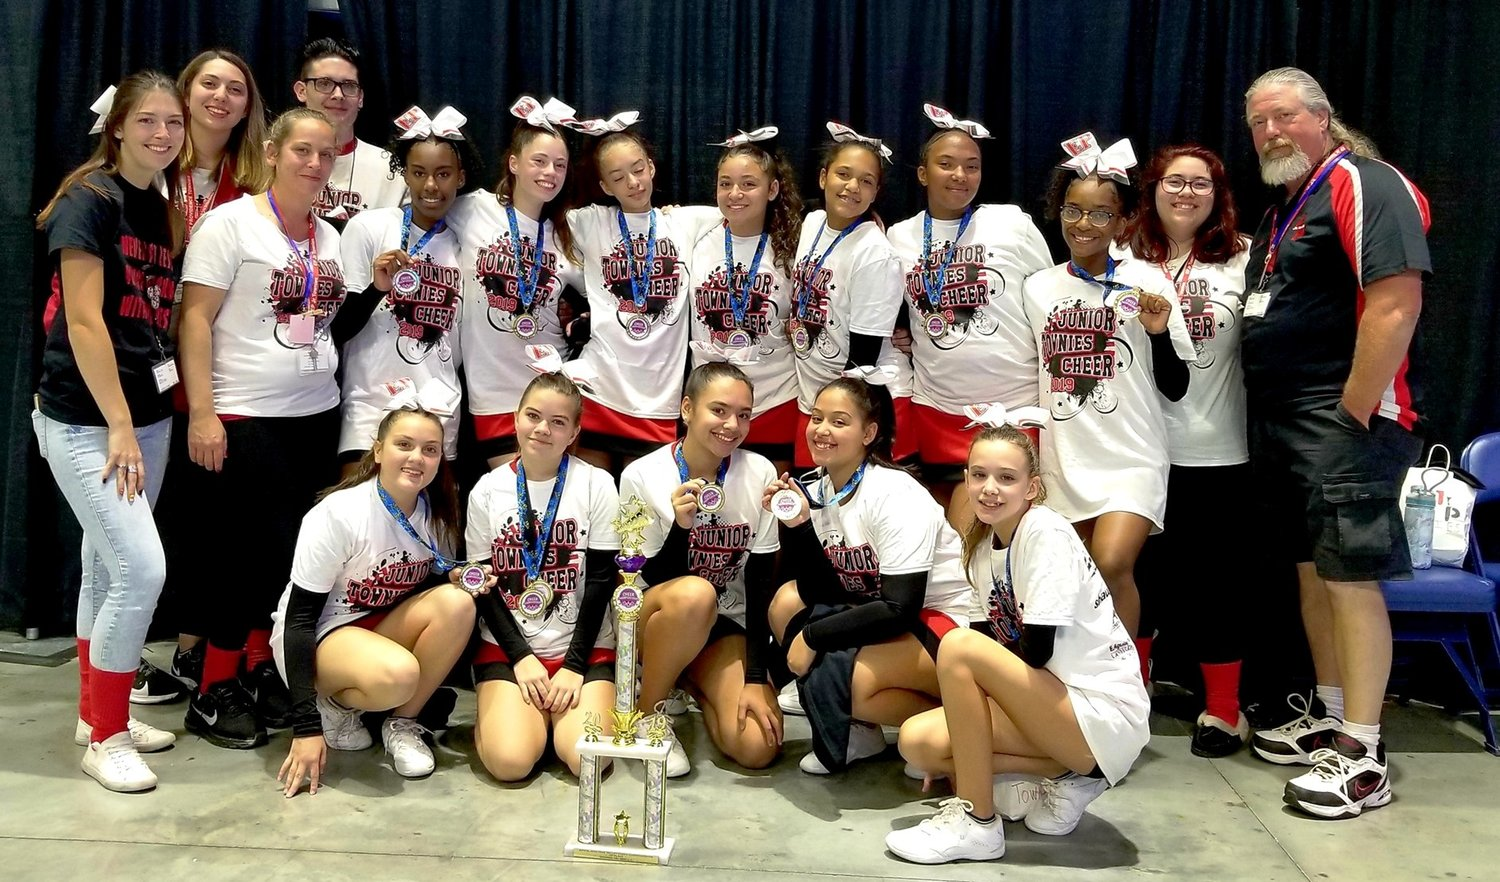 Jr. Townies cheer champs